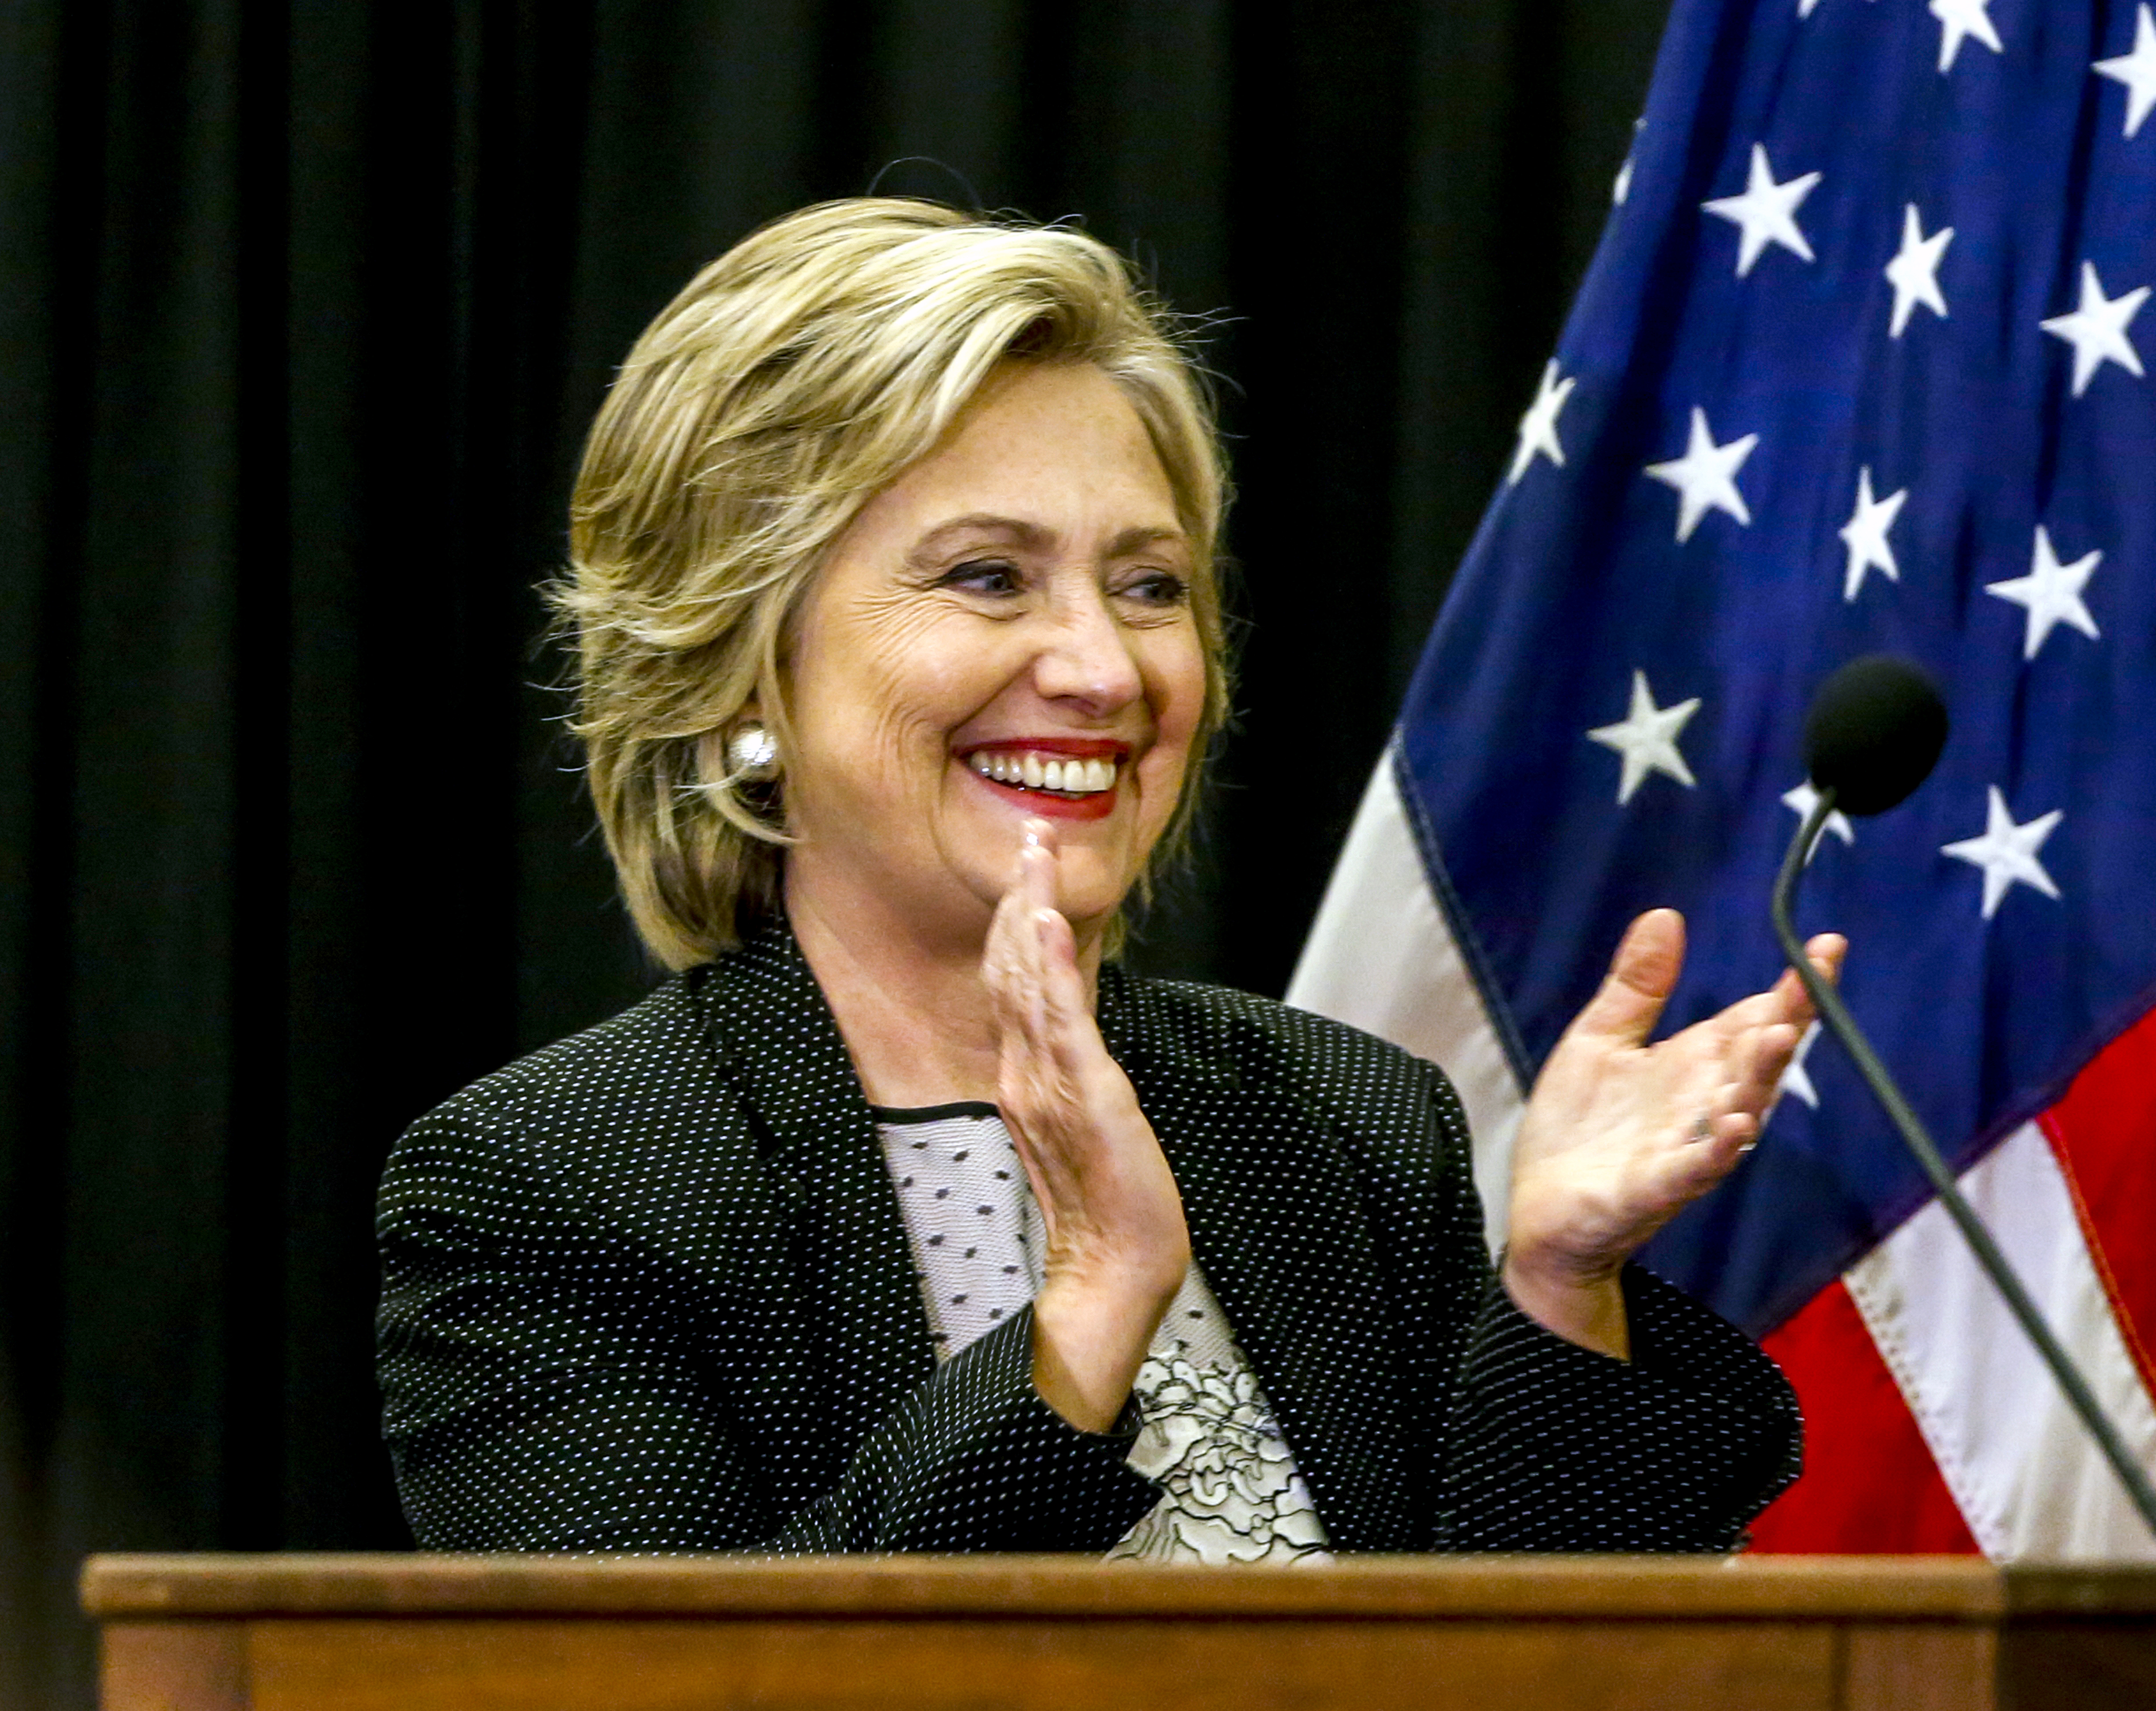 Democratic presidential candidate Hillary Clinton arrives to speak at a 'Women for Hillary' meeting at the University of Wisconsin Milwaukee in, Wisconsin, Sept. 10, 2015.